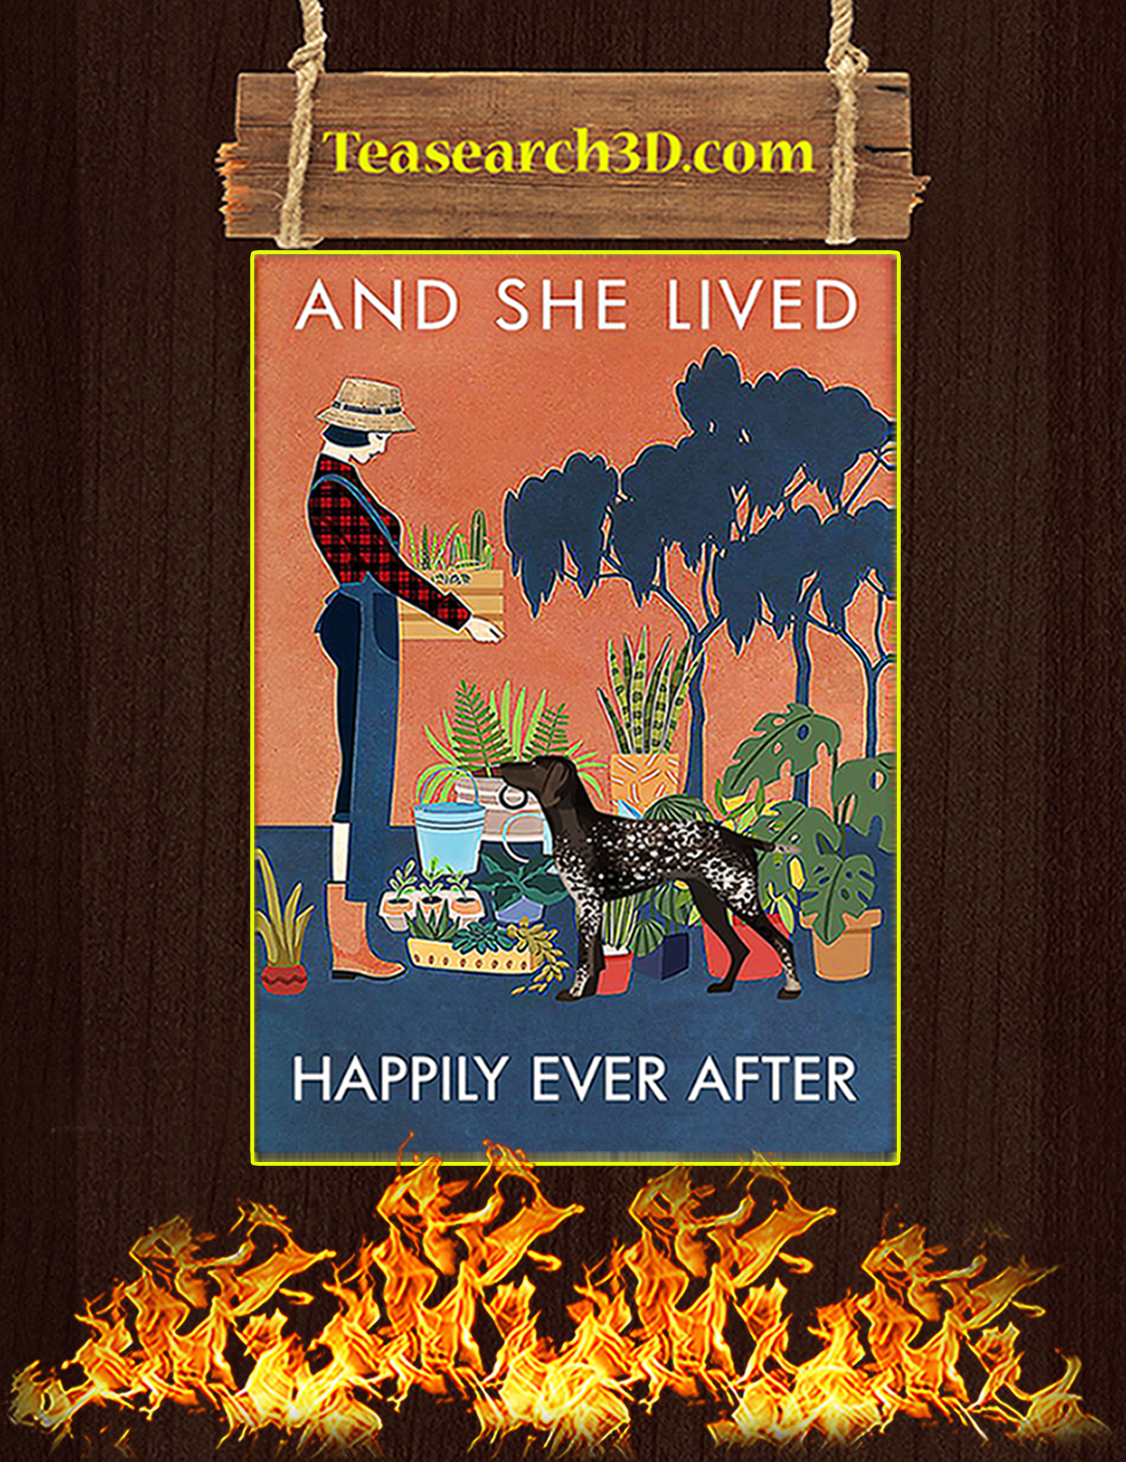 German Shorthaired Pointer And she lived happily ever after poster A3